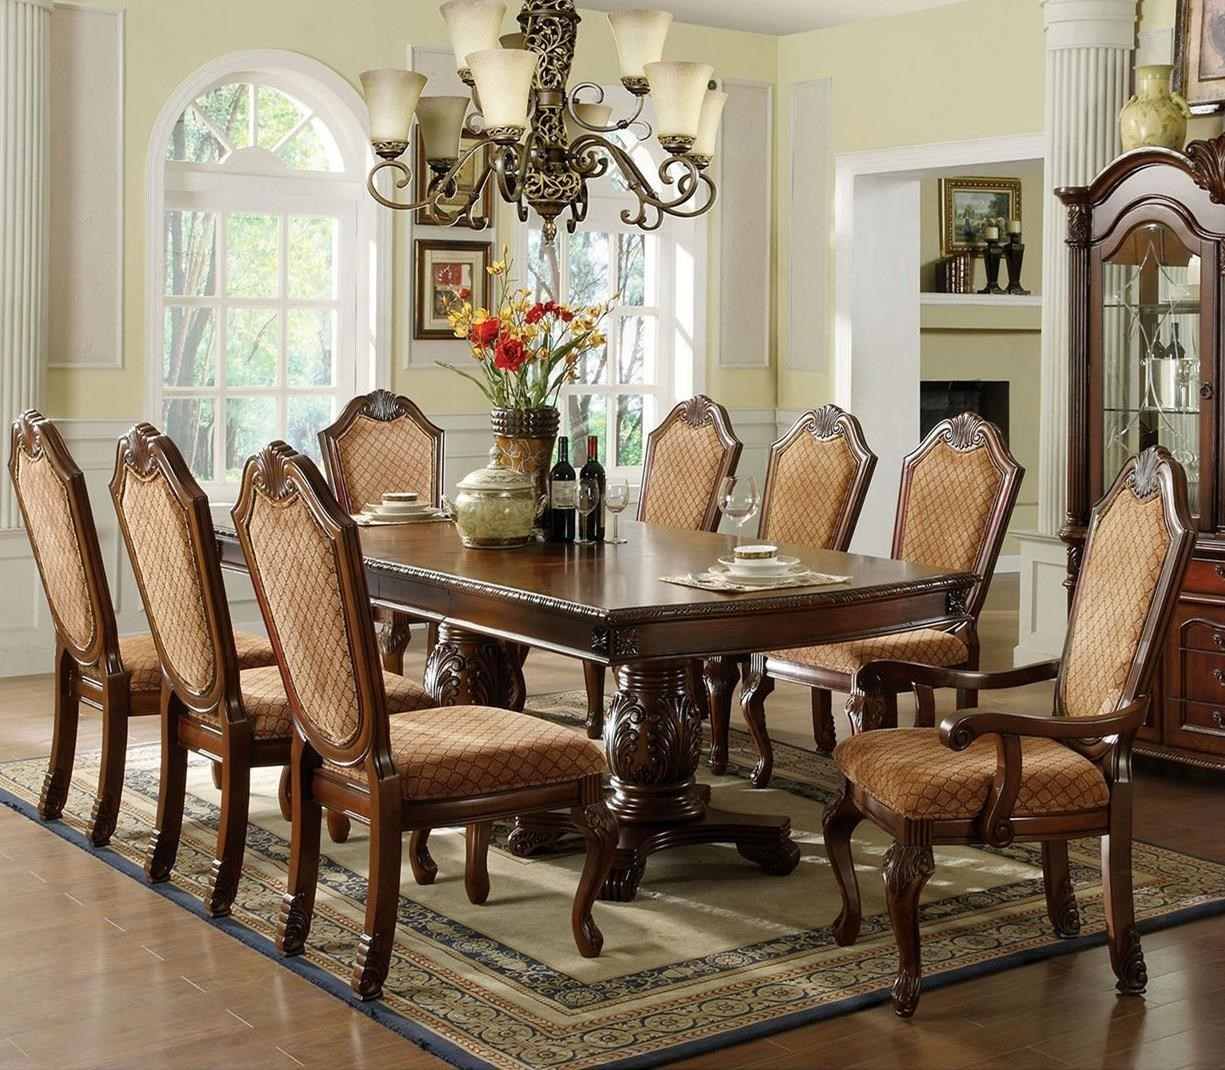 Attirant Furniture Of America Napa ValleyTable + 2 Arm Chairs + 6 Side Chairs ...